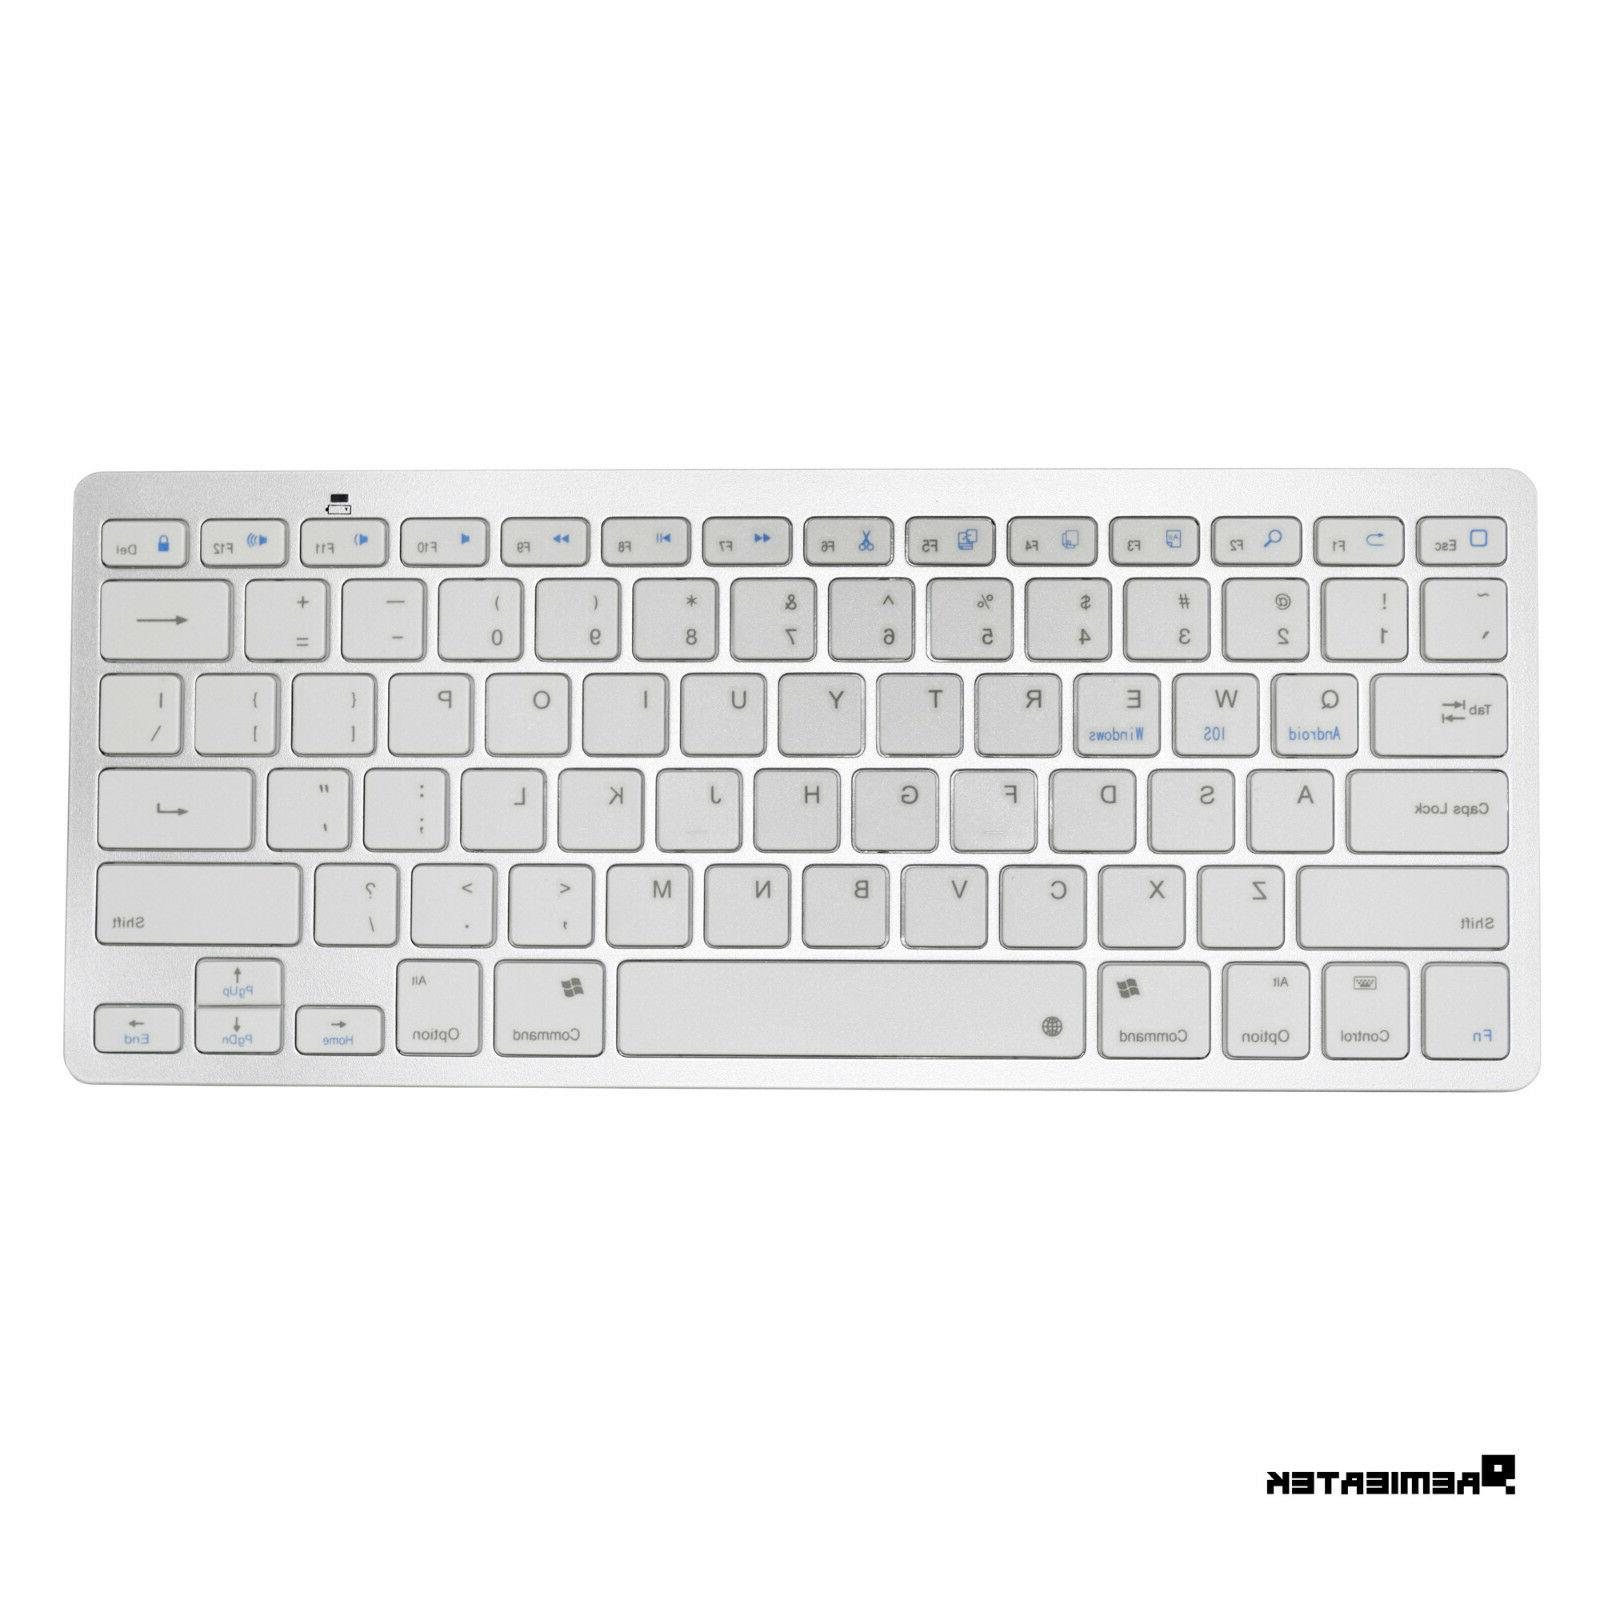 Premiertek Bluetooth Slim Keyboard PC/MAC/iOS/Android - Wireless Bluetooth Tablet, Smartphone, Computer - On/Off - - Silver